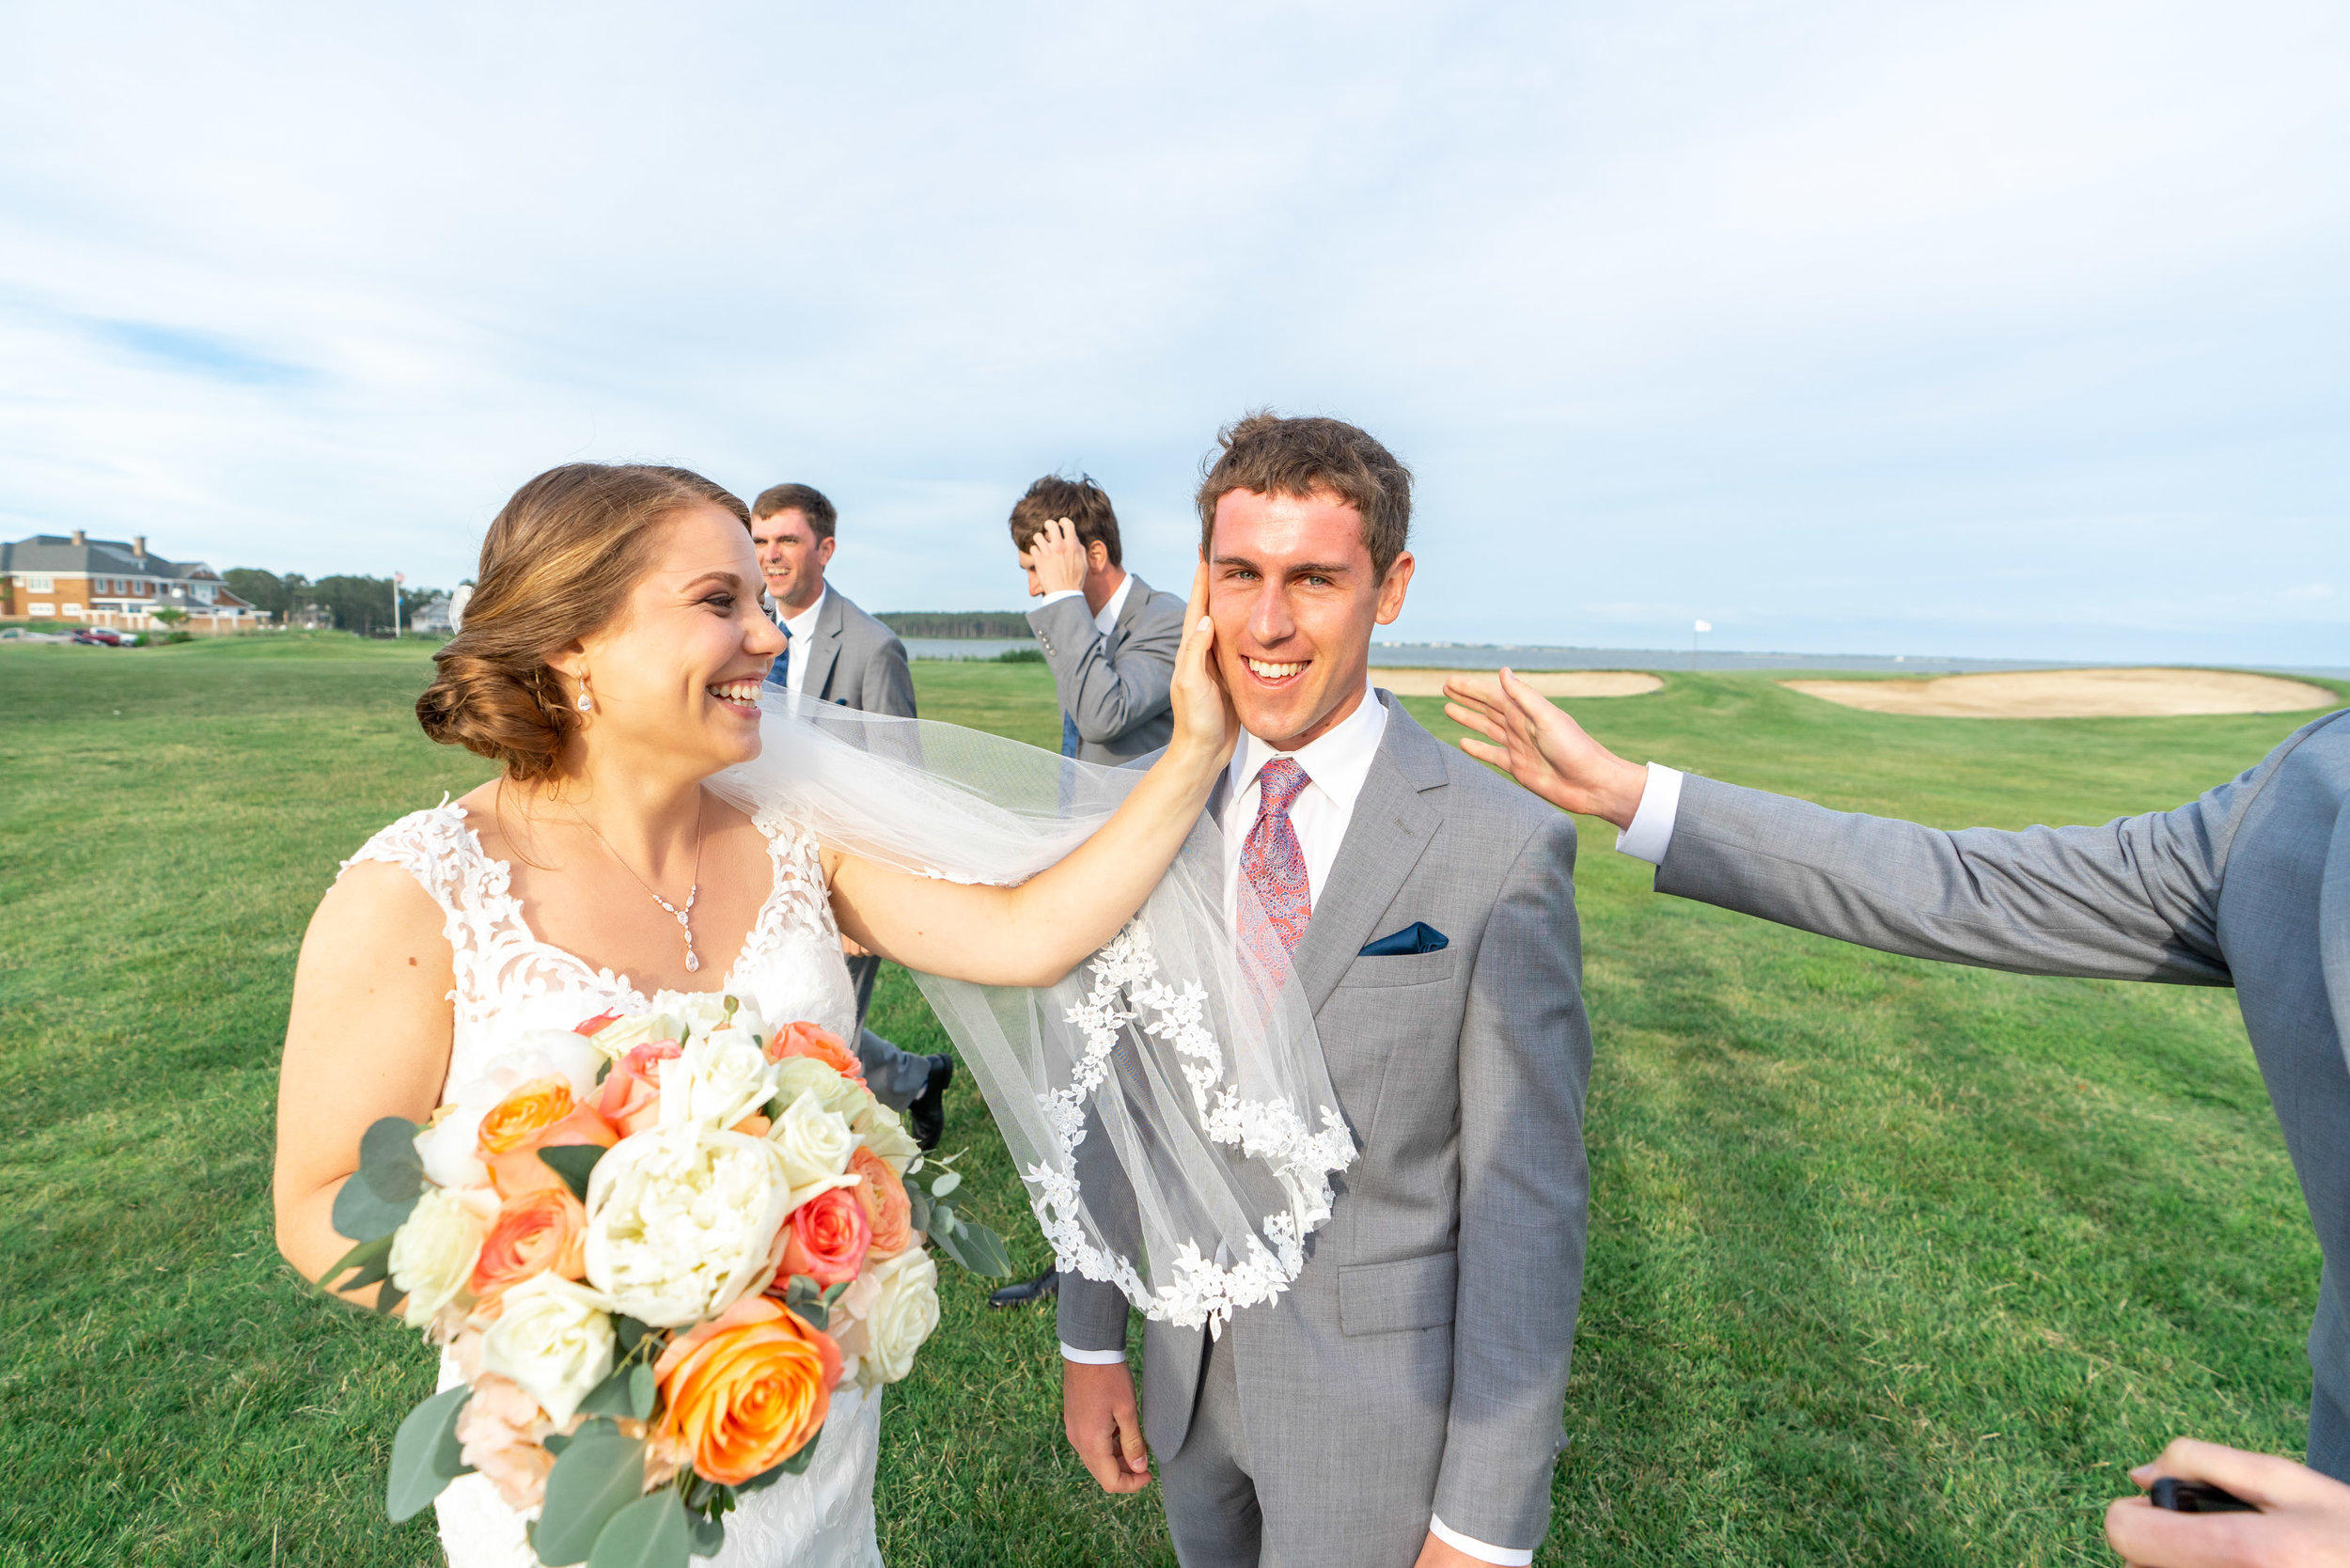 bride with her hand on grooms cheek and ocean in the background